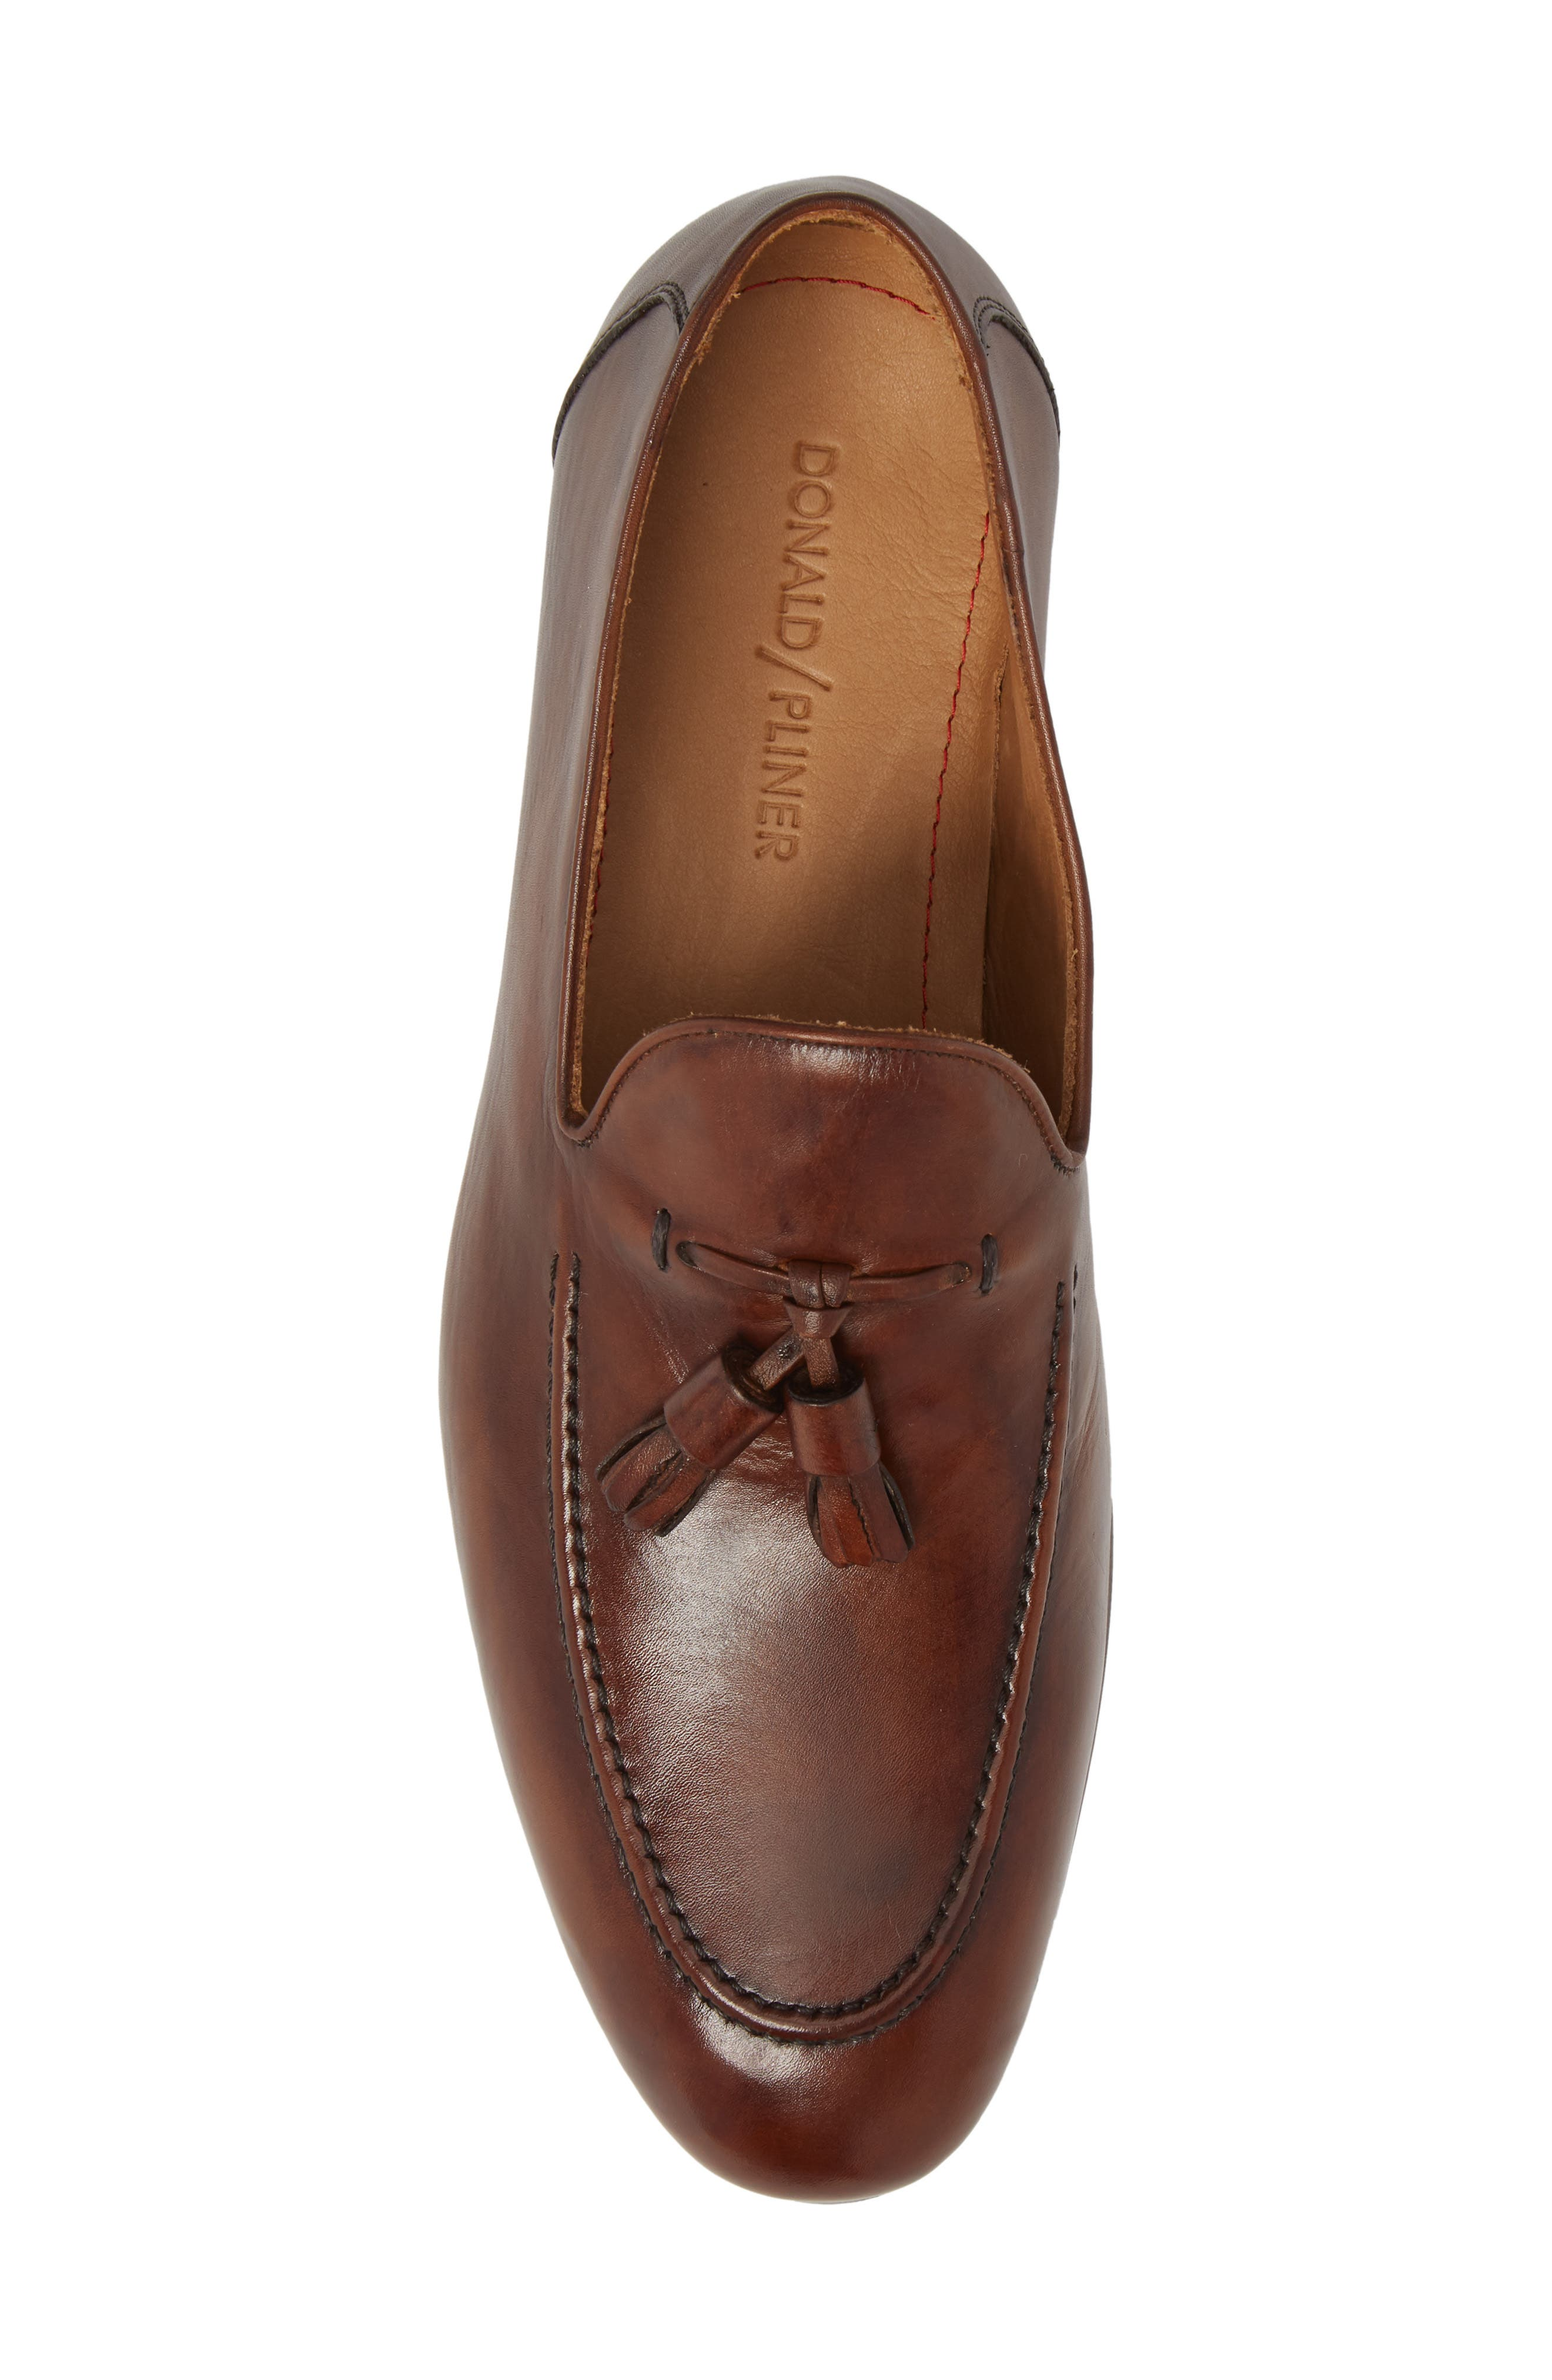 Ario Tassel Loafer,                             Alternate thumbnail 5, color,                             BROWN LEATHER